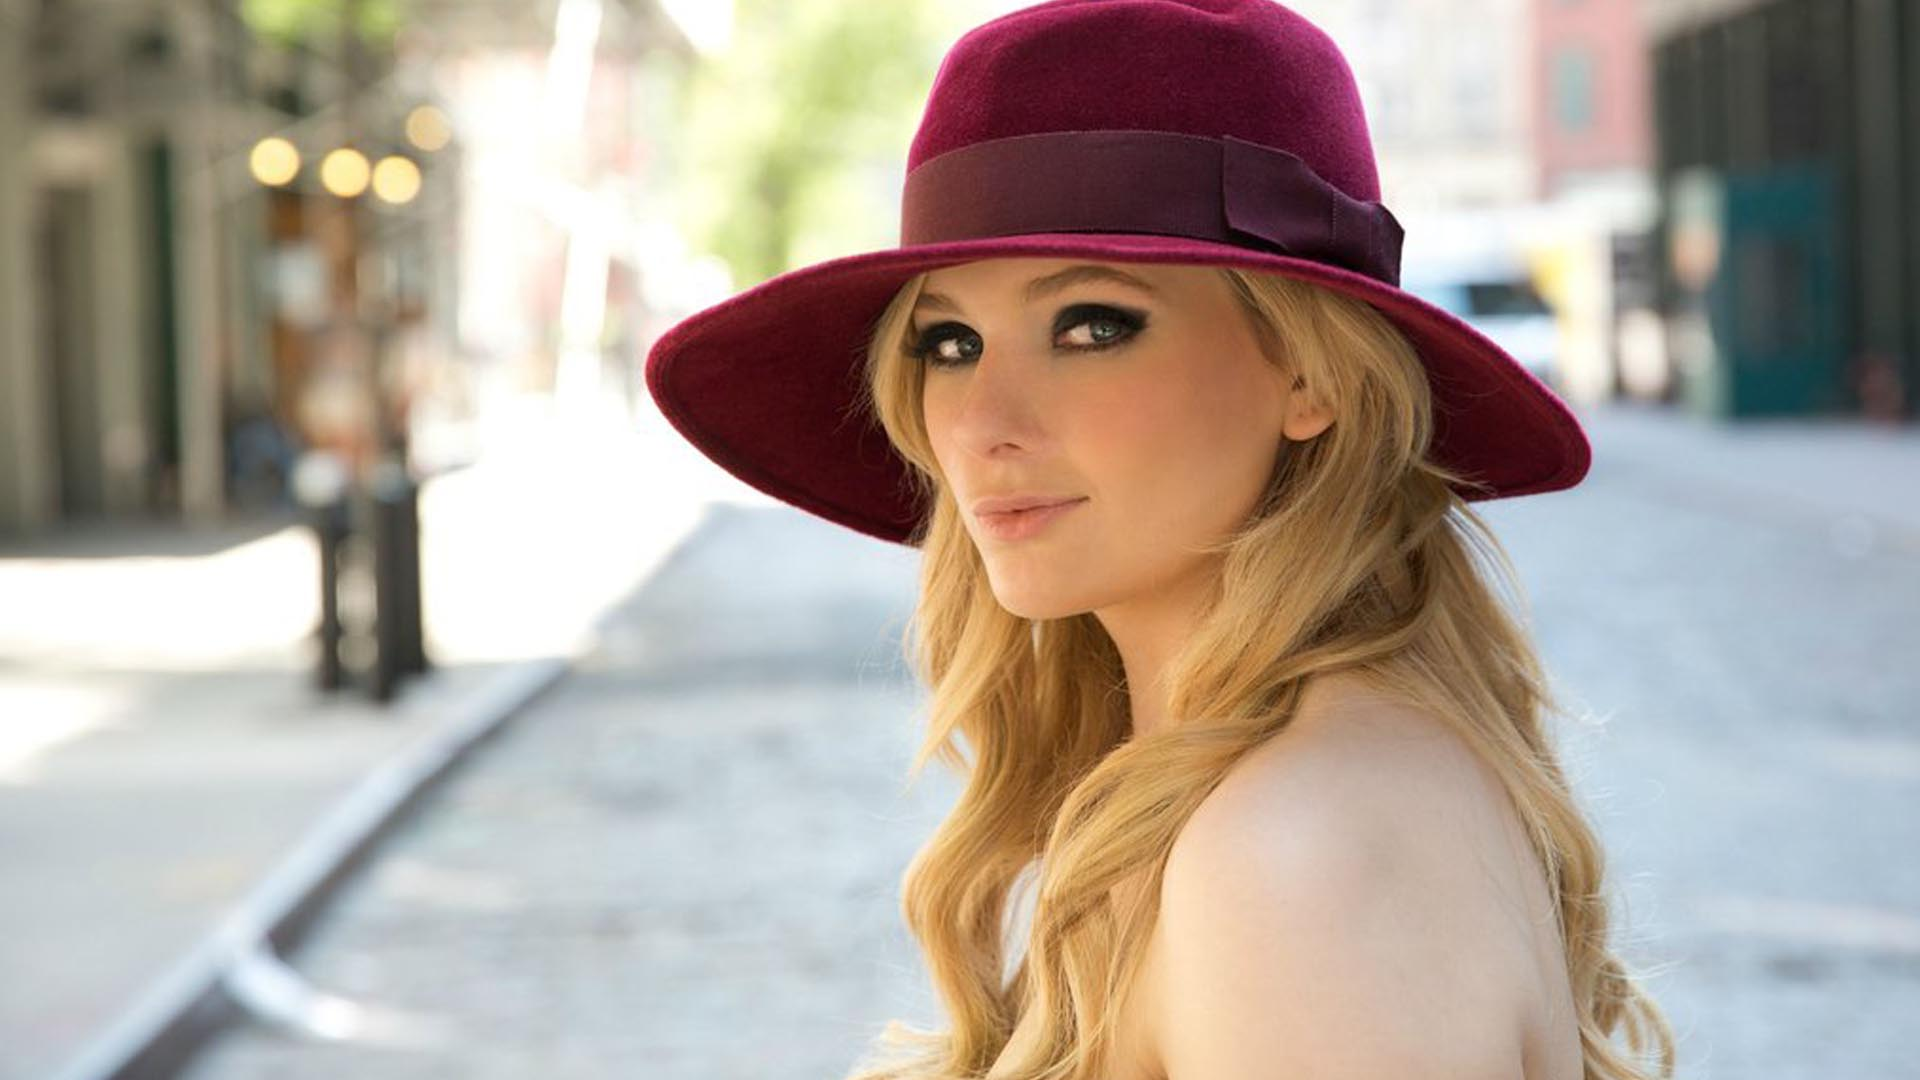 Abigail Breslin red hat - Abigail Breslin Movies, Age, Weight, Net Worth, Family and Wallpapers